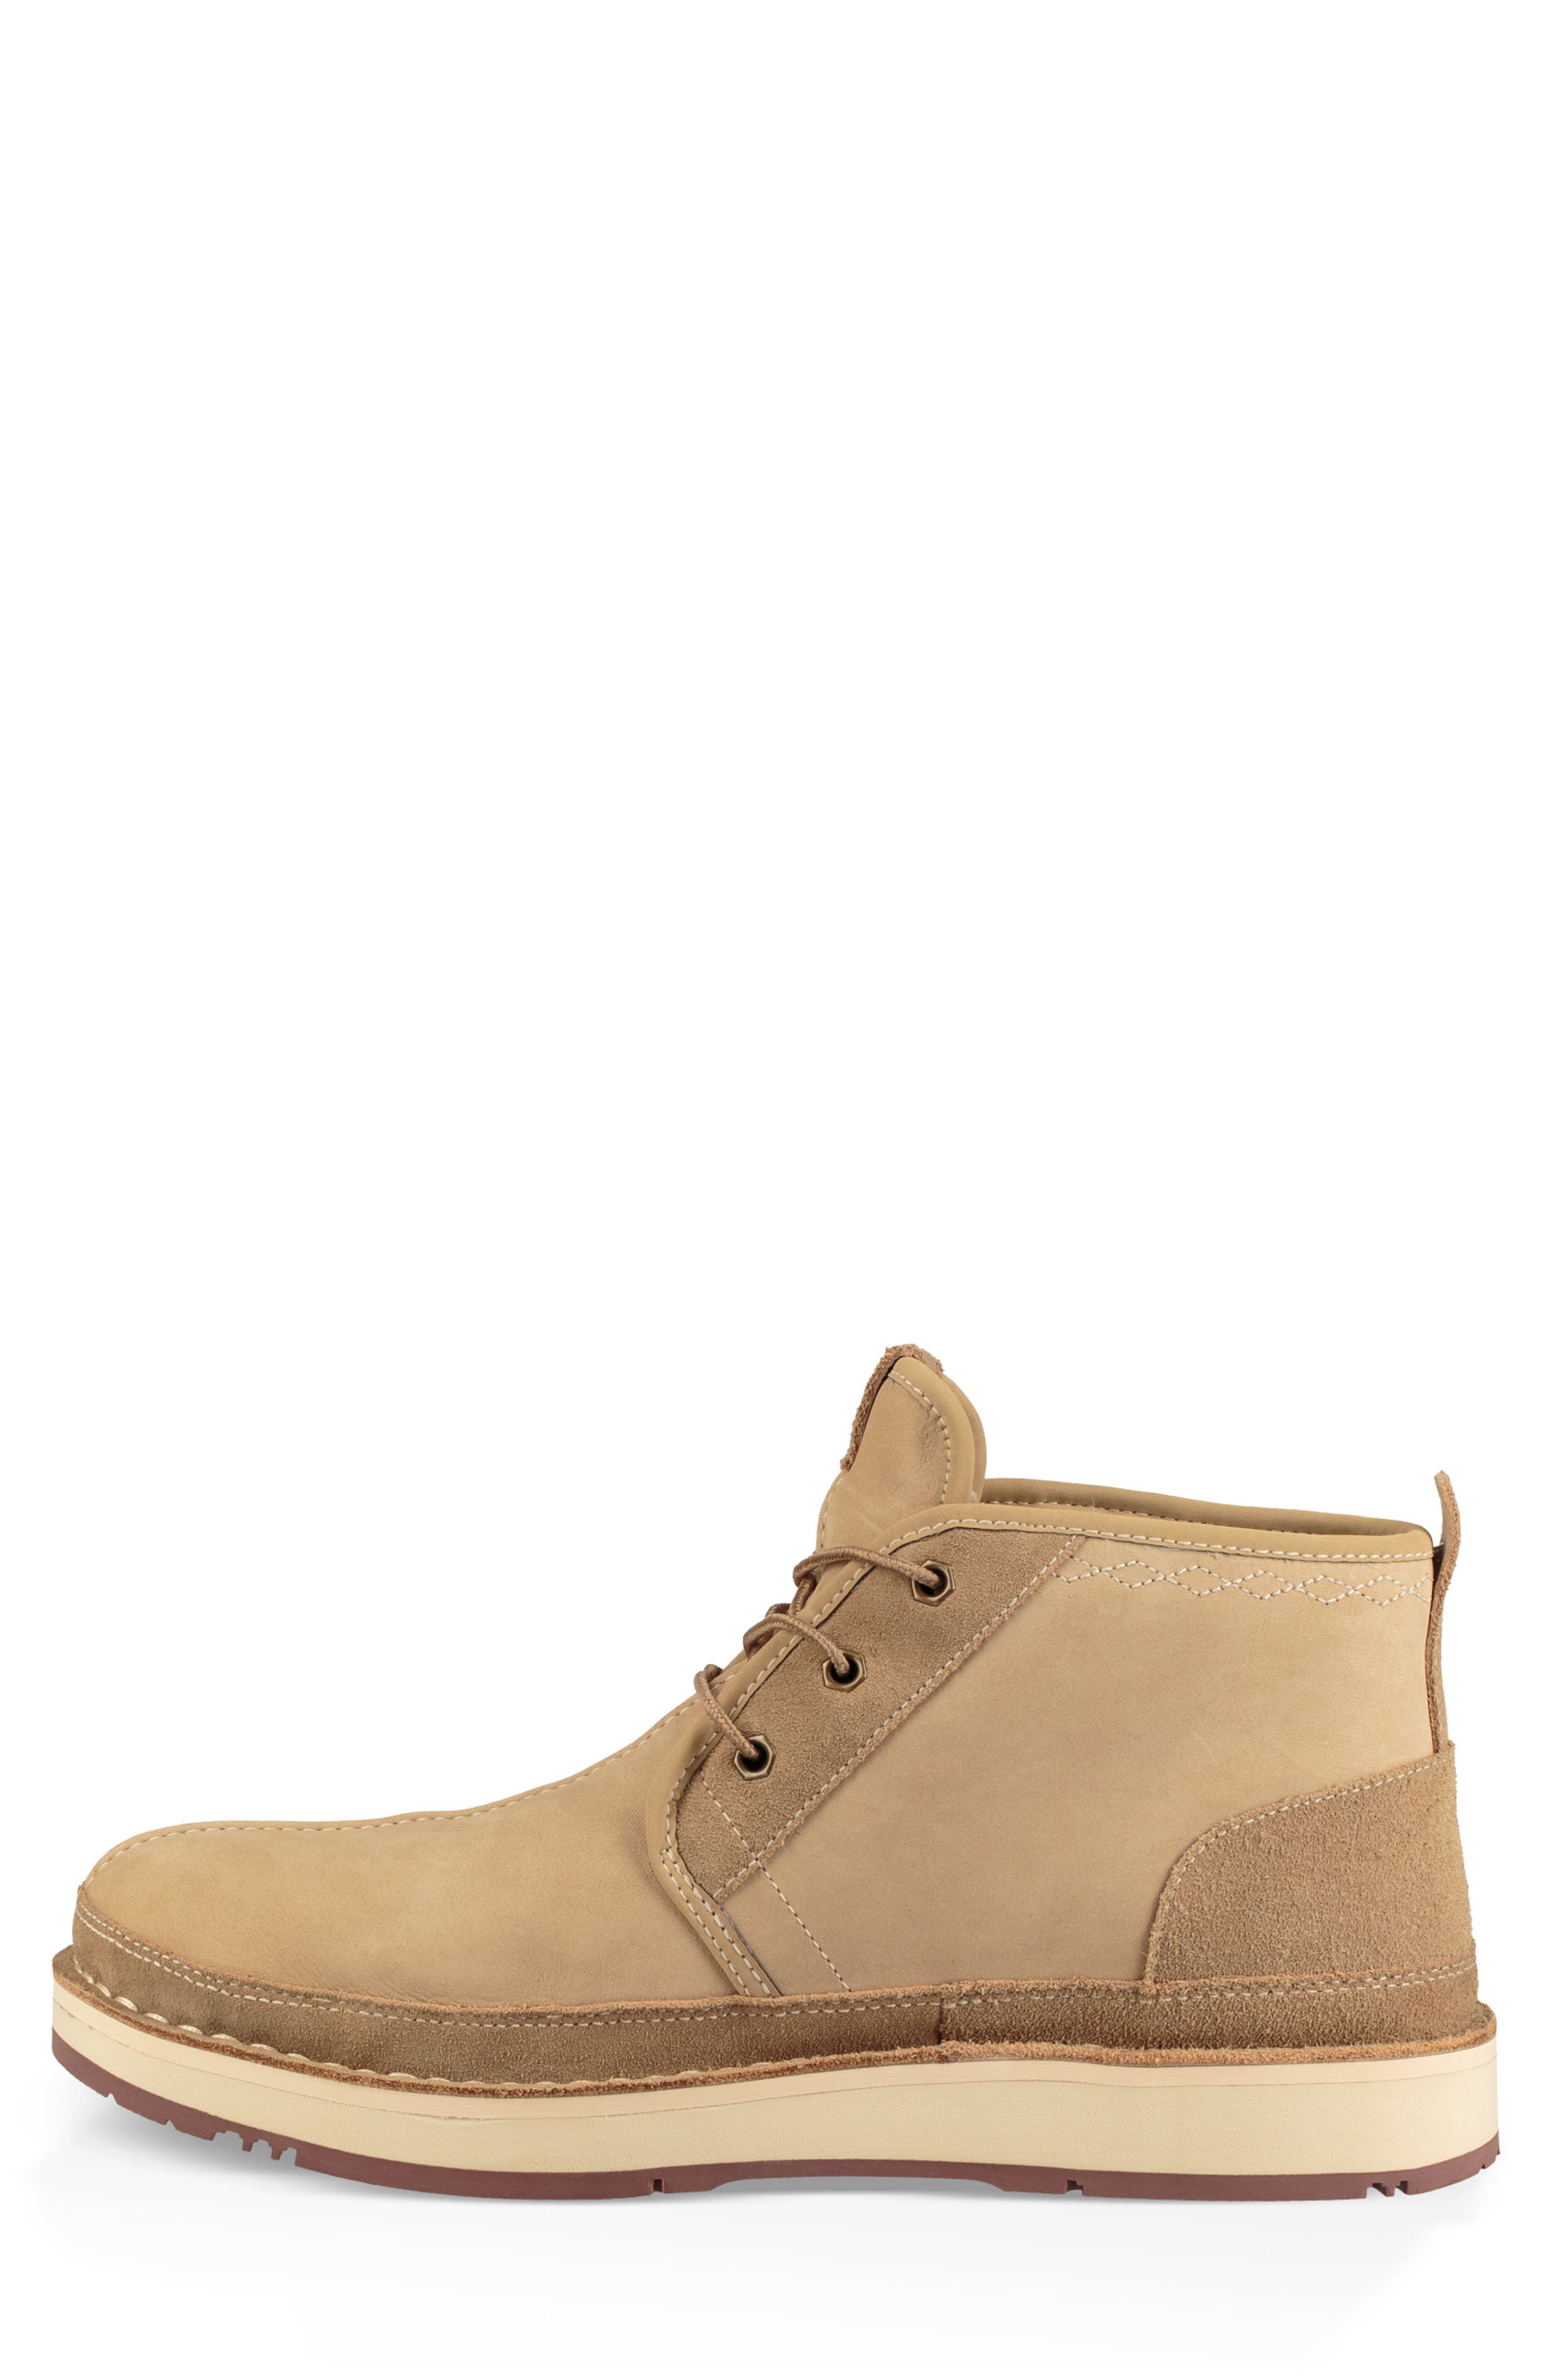 Avalance Neumel Waterproof Boot,                             Alternate thumbnail 6, color,                             DESERT TAN